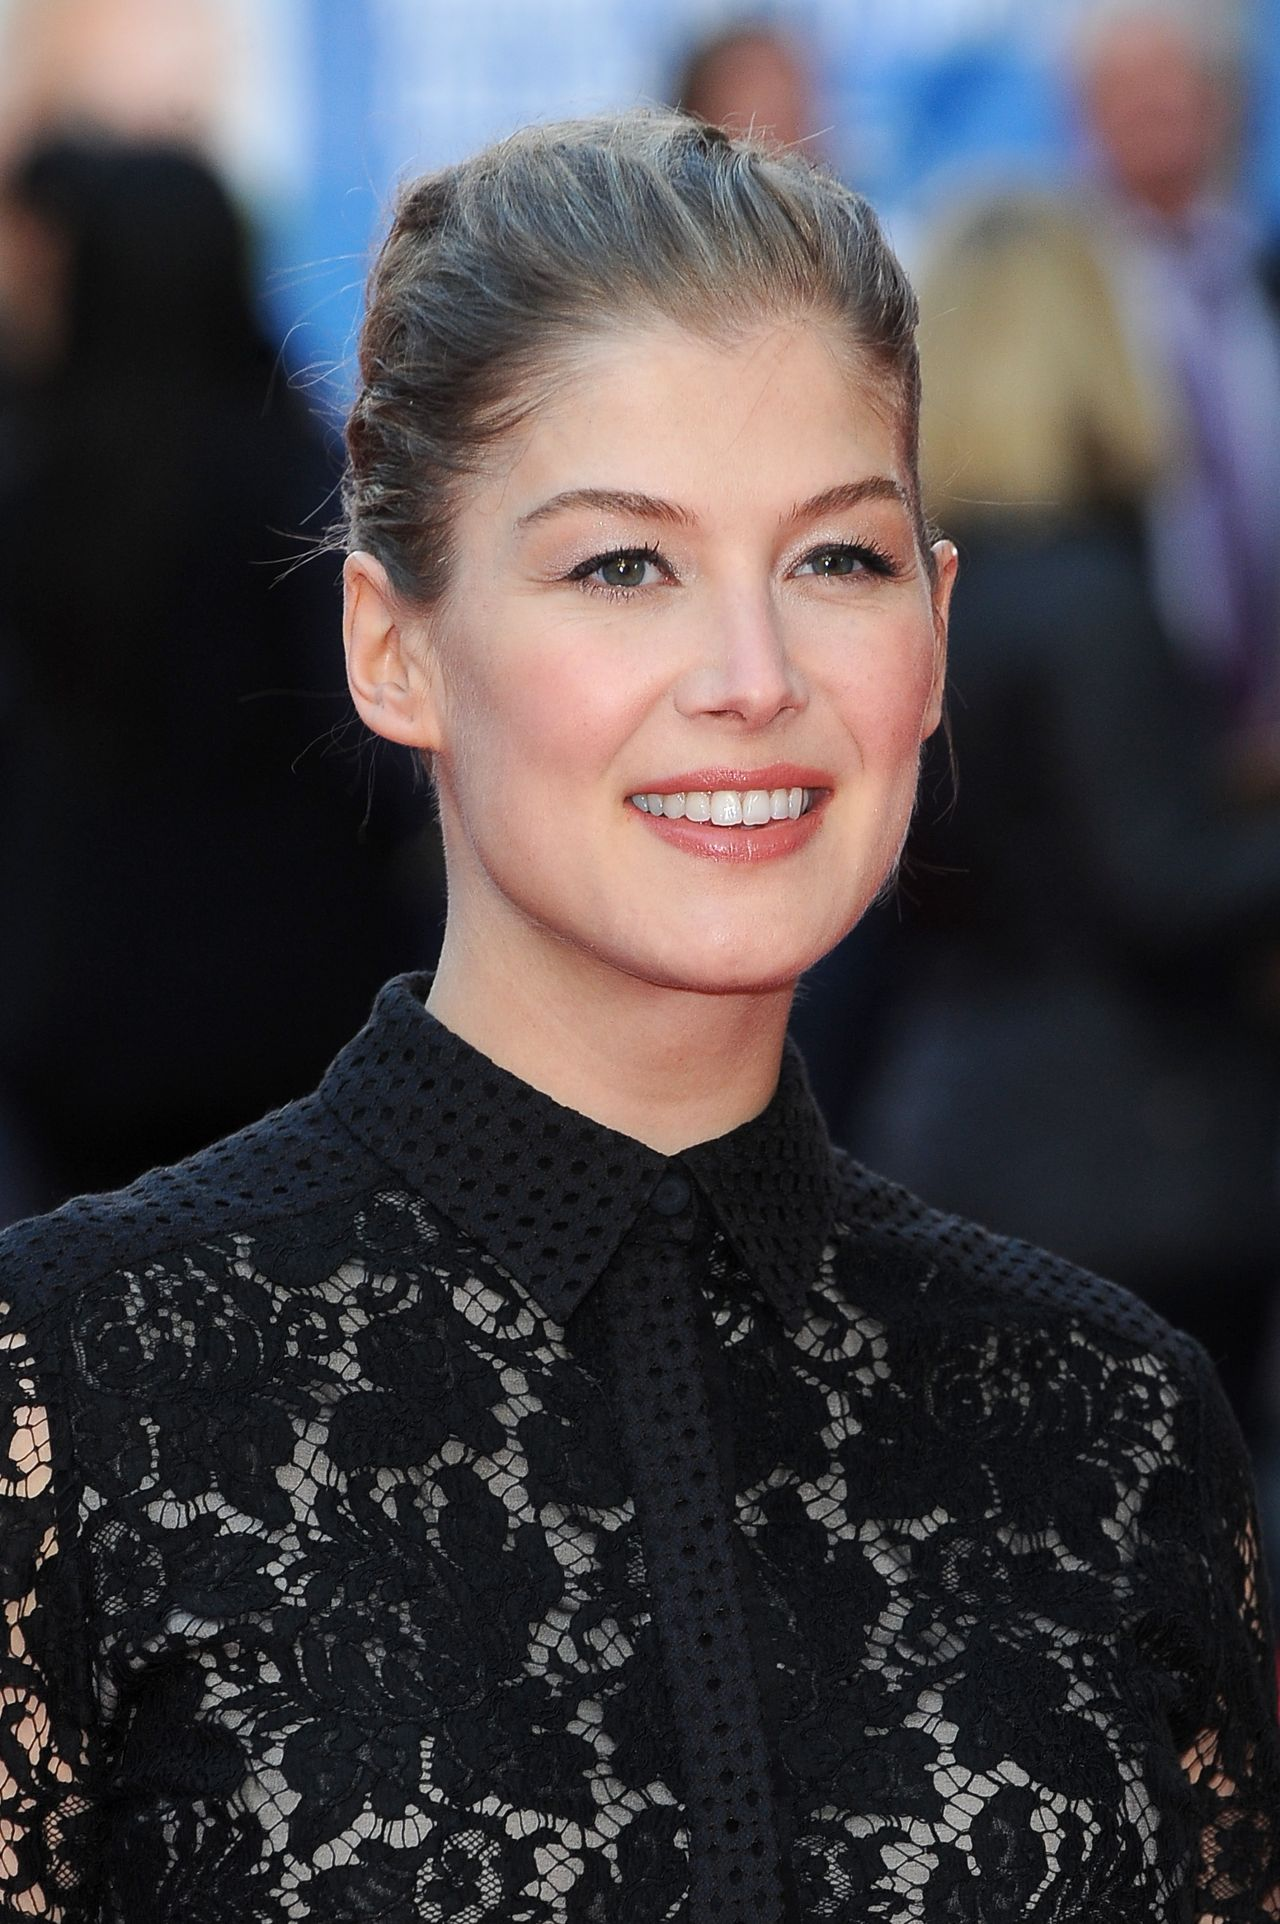 Rosamund Pike - 'What We Did On Our Holiday' UK Film ...Rosamund Pike 2014